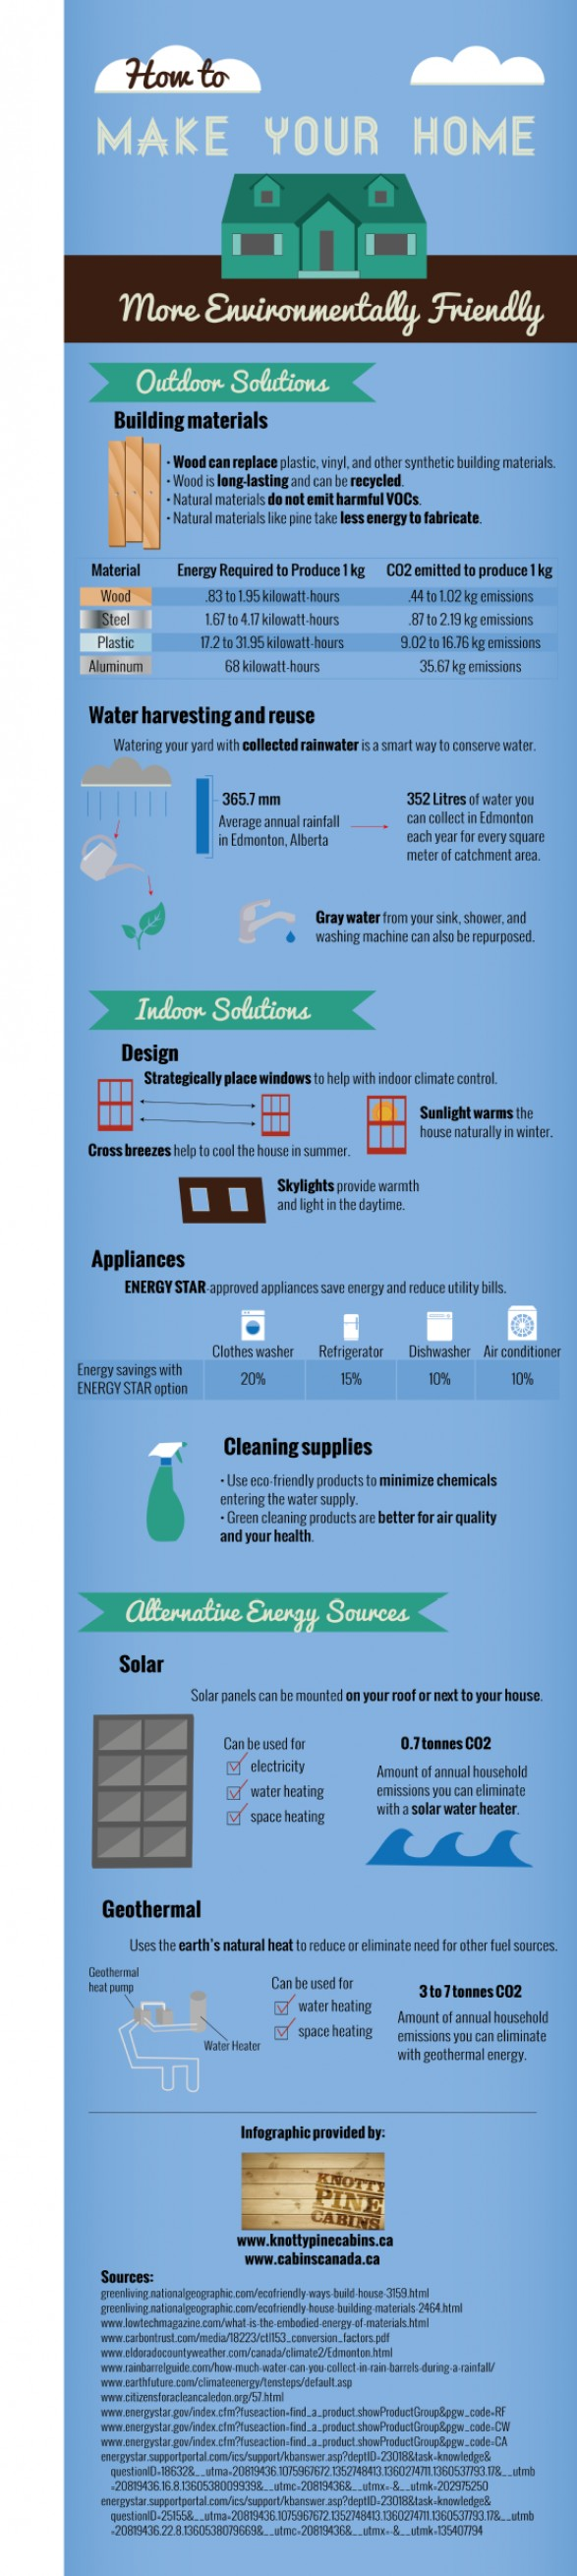 How to Make Your Home More Environmentally Friendly